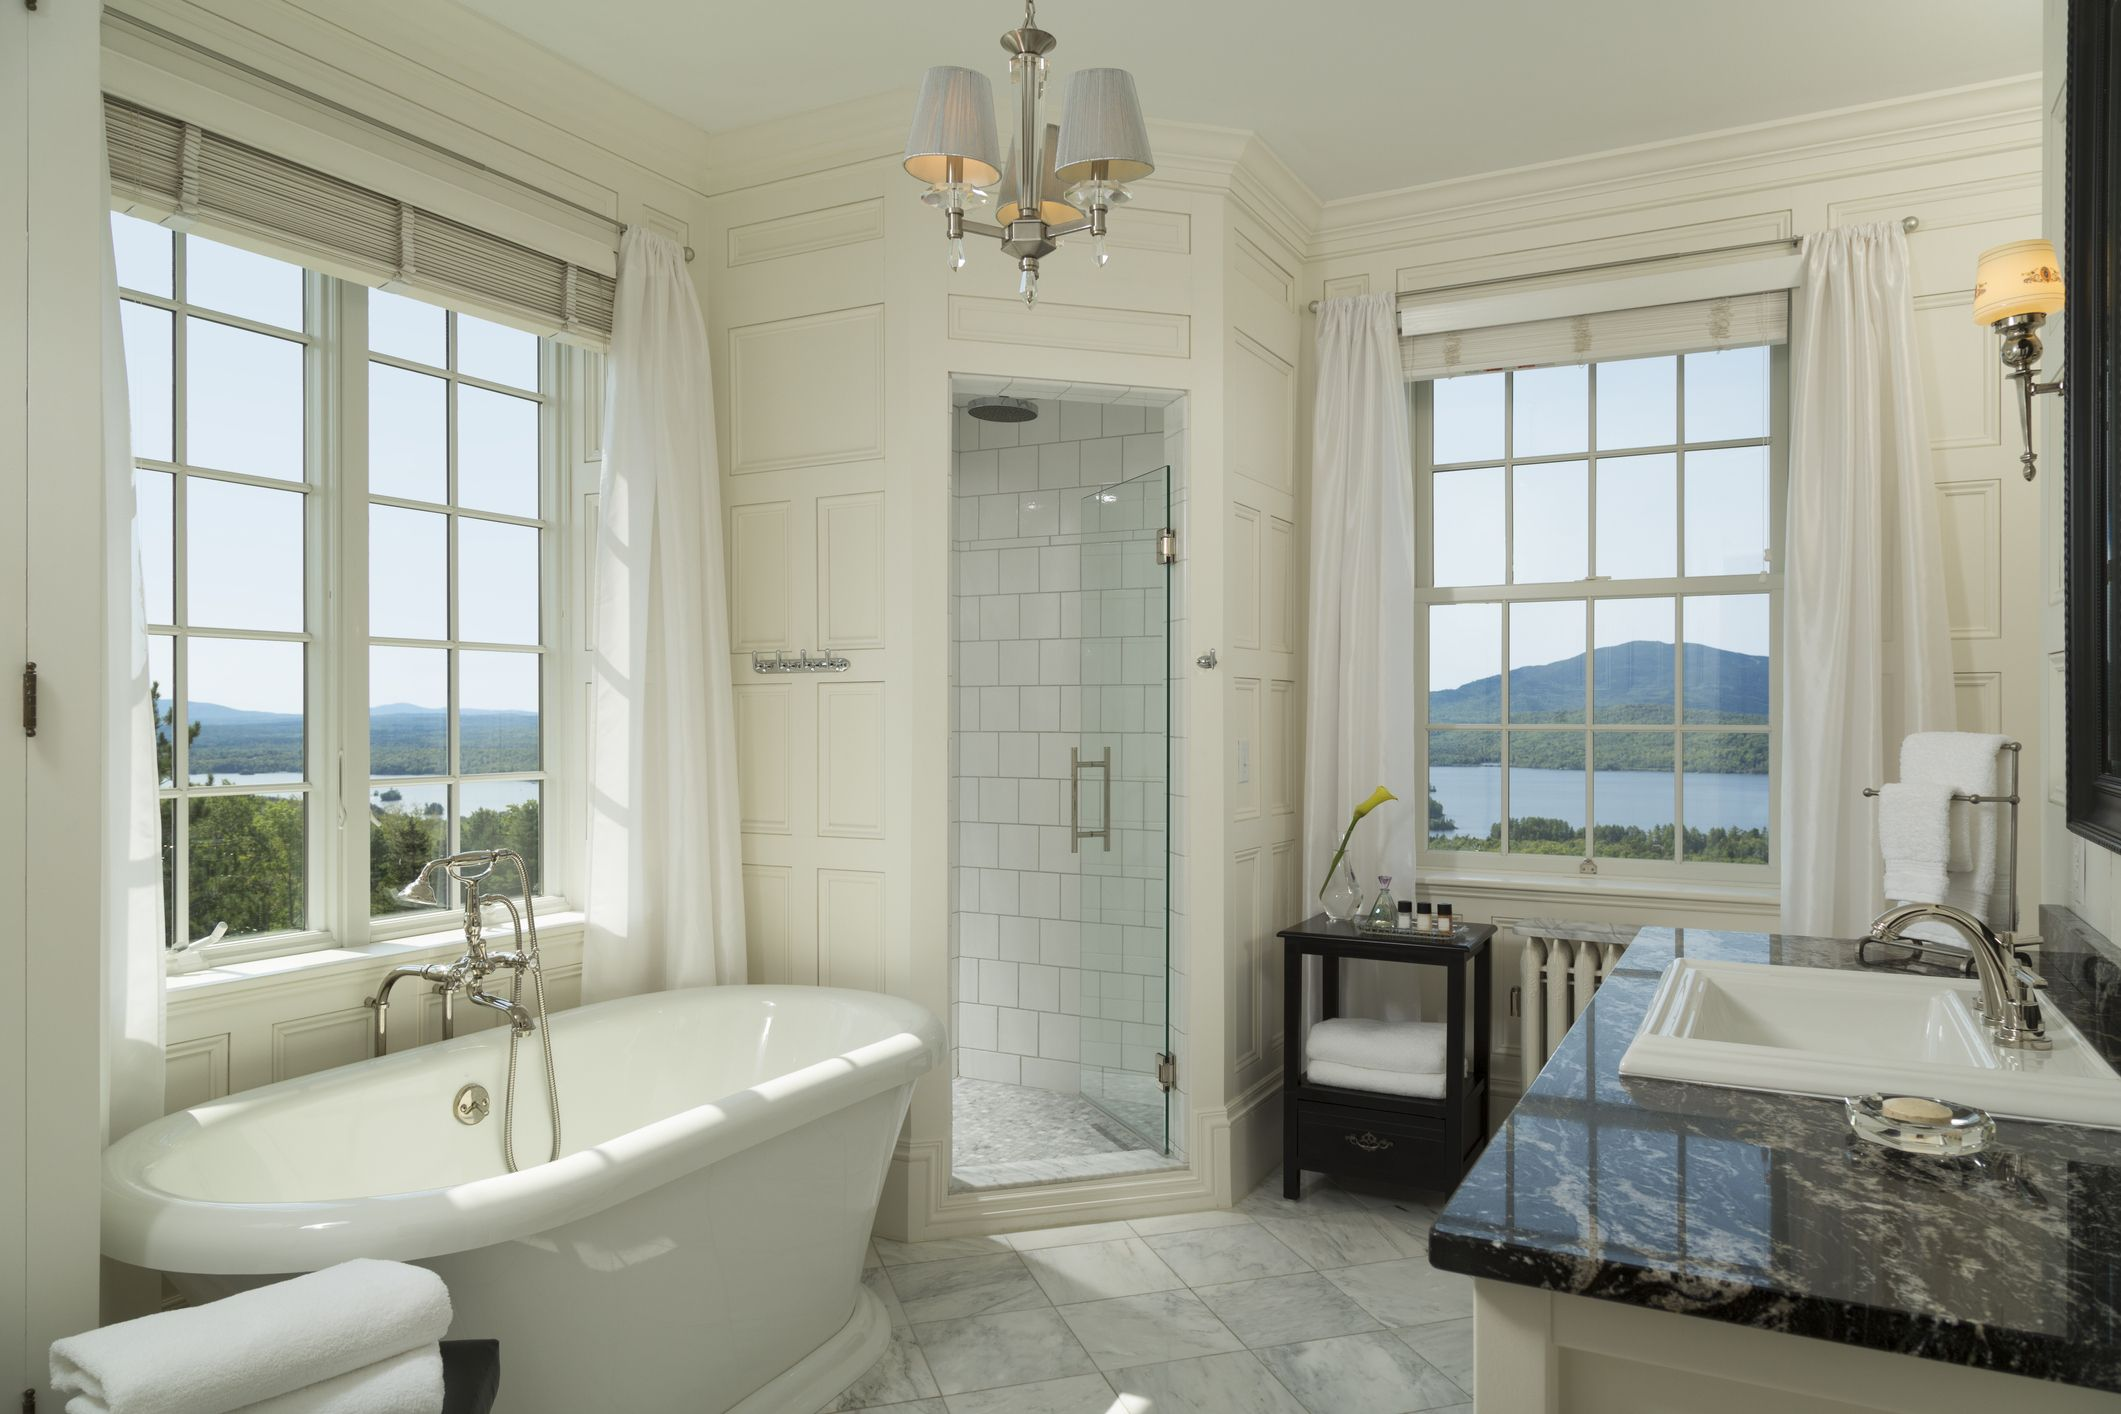 Tiny luxury follows husband and wife tiny home builder duo, tyson and michelle spiess. 10 Bathroom Flooring Ideas Types Of Bathroom Flooring